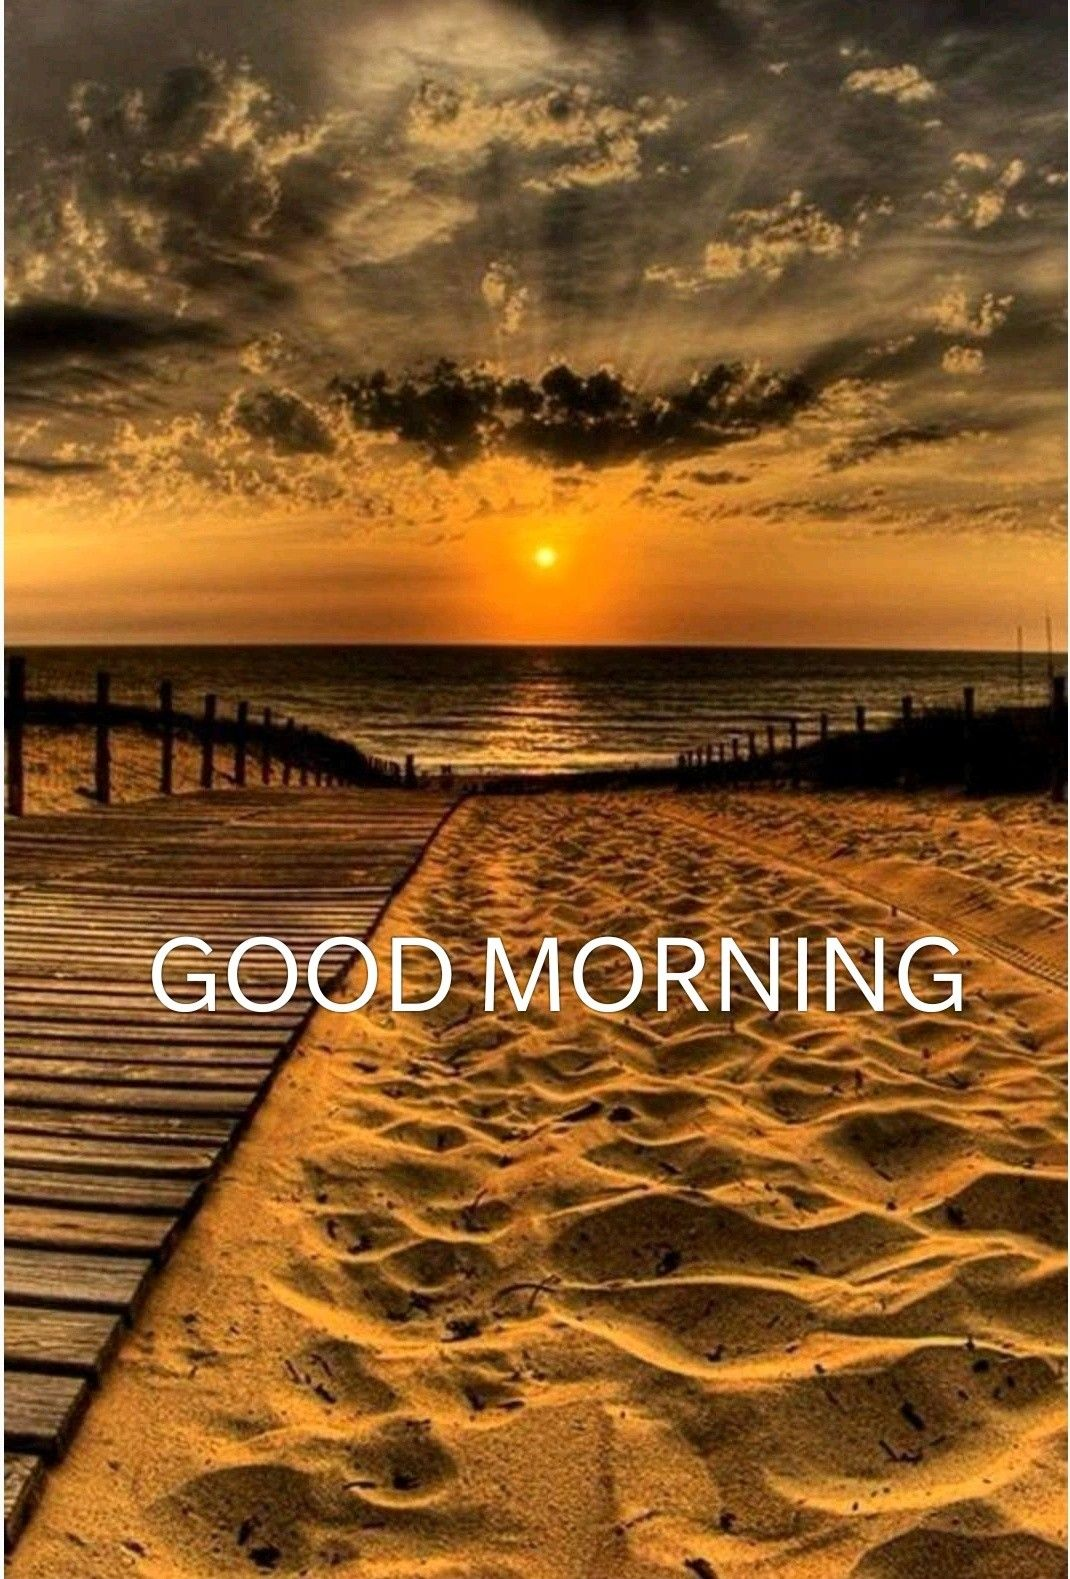 Hope You Have An Awesome Day Even If It Is Coming A Freaking Hurricane Outside Just Good Morning Wallpaper Morning Pictures Good Morning Beautiful Images